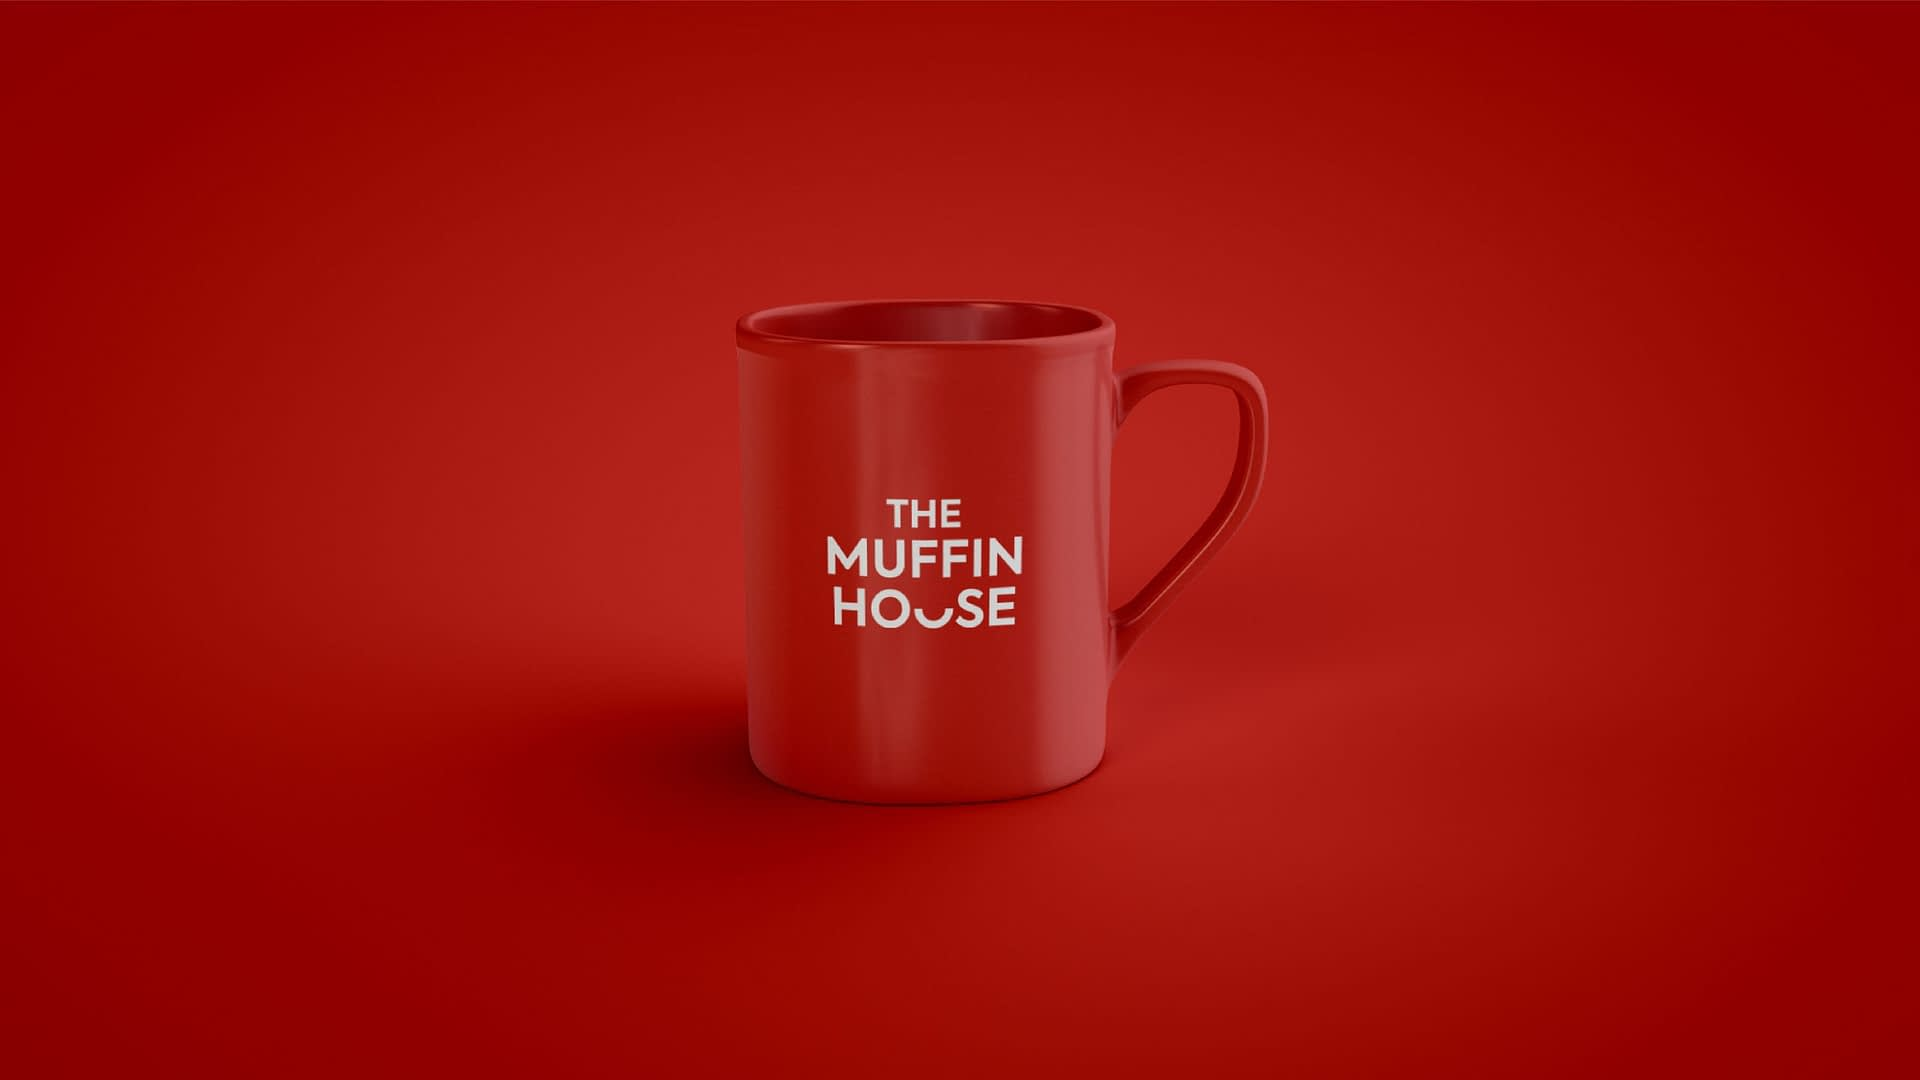 THE MUFFIN HOUSE COFFEE CUP BRANDING DESIGN